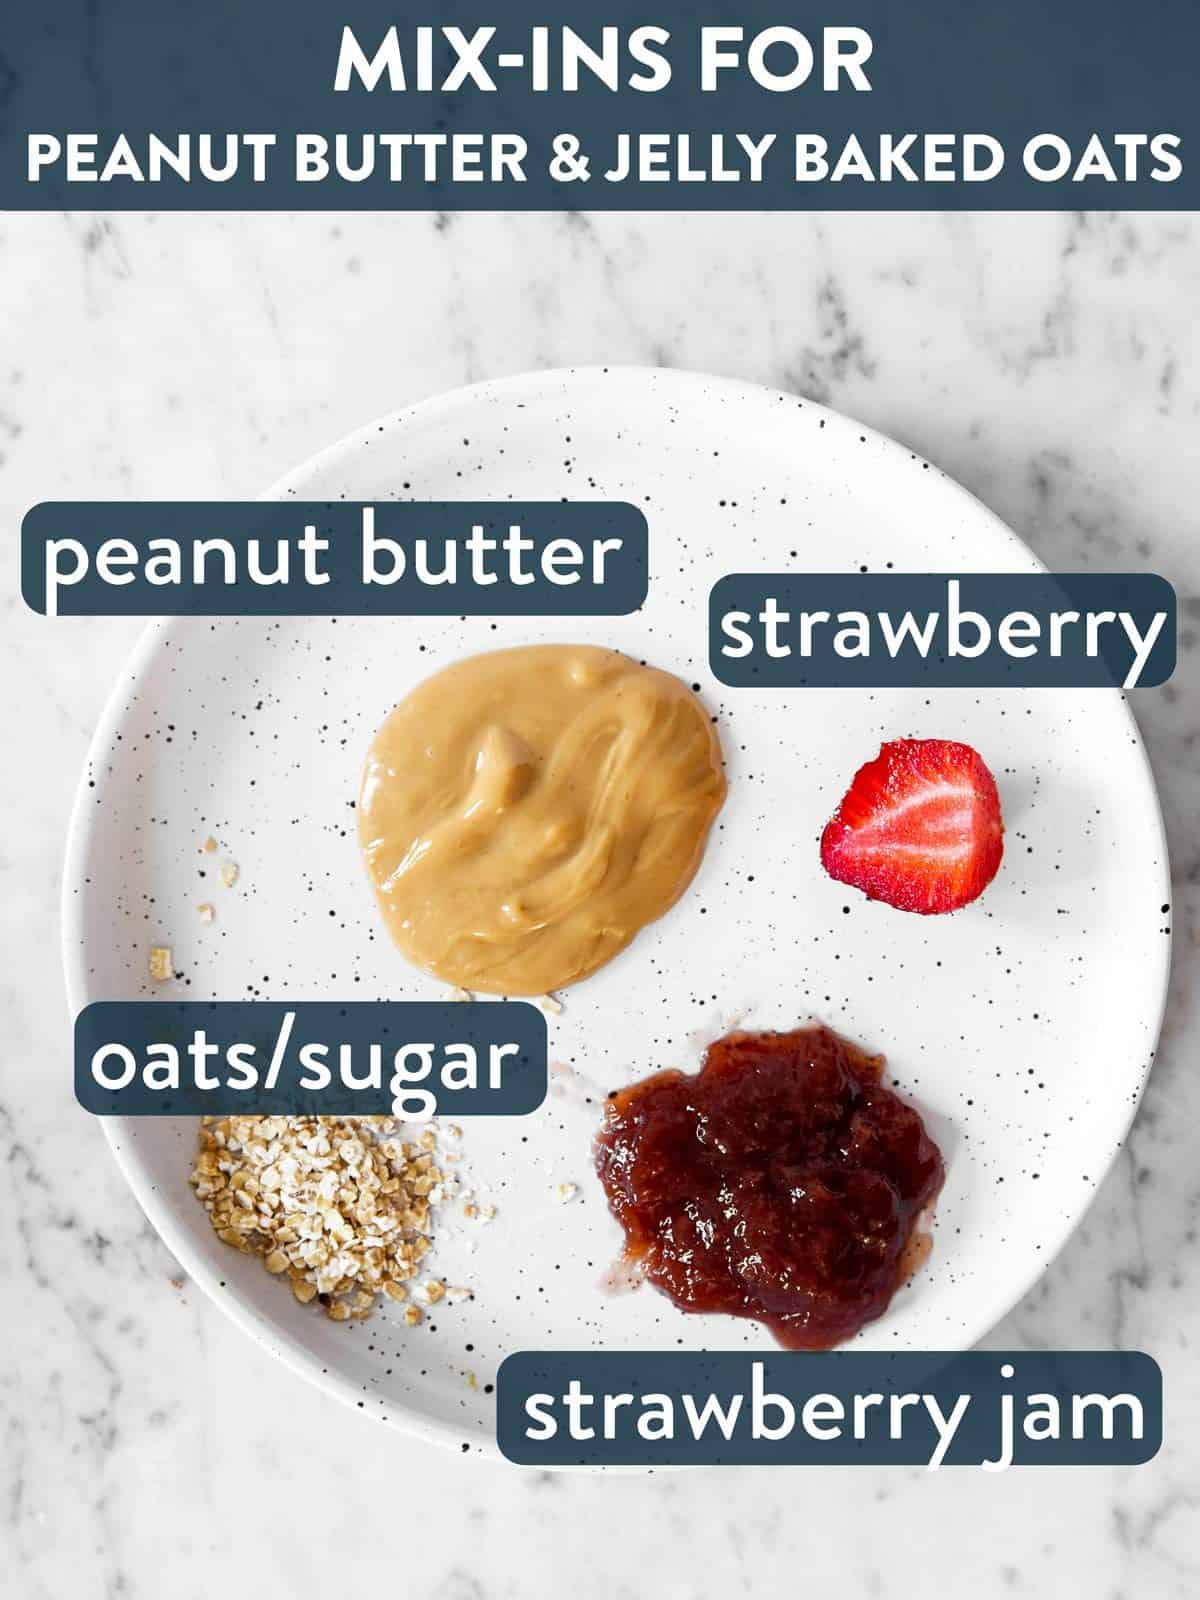 mix-ins for peanut butter & jelly baked oats on white plate with text labels